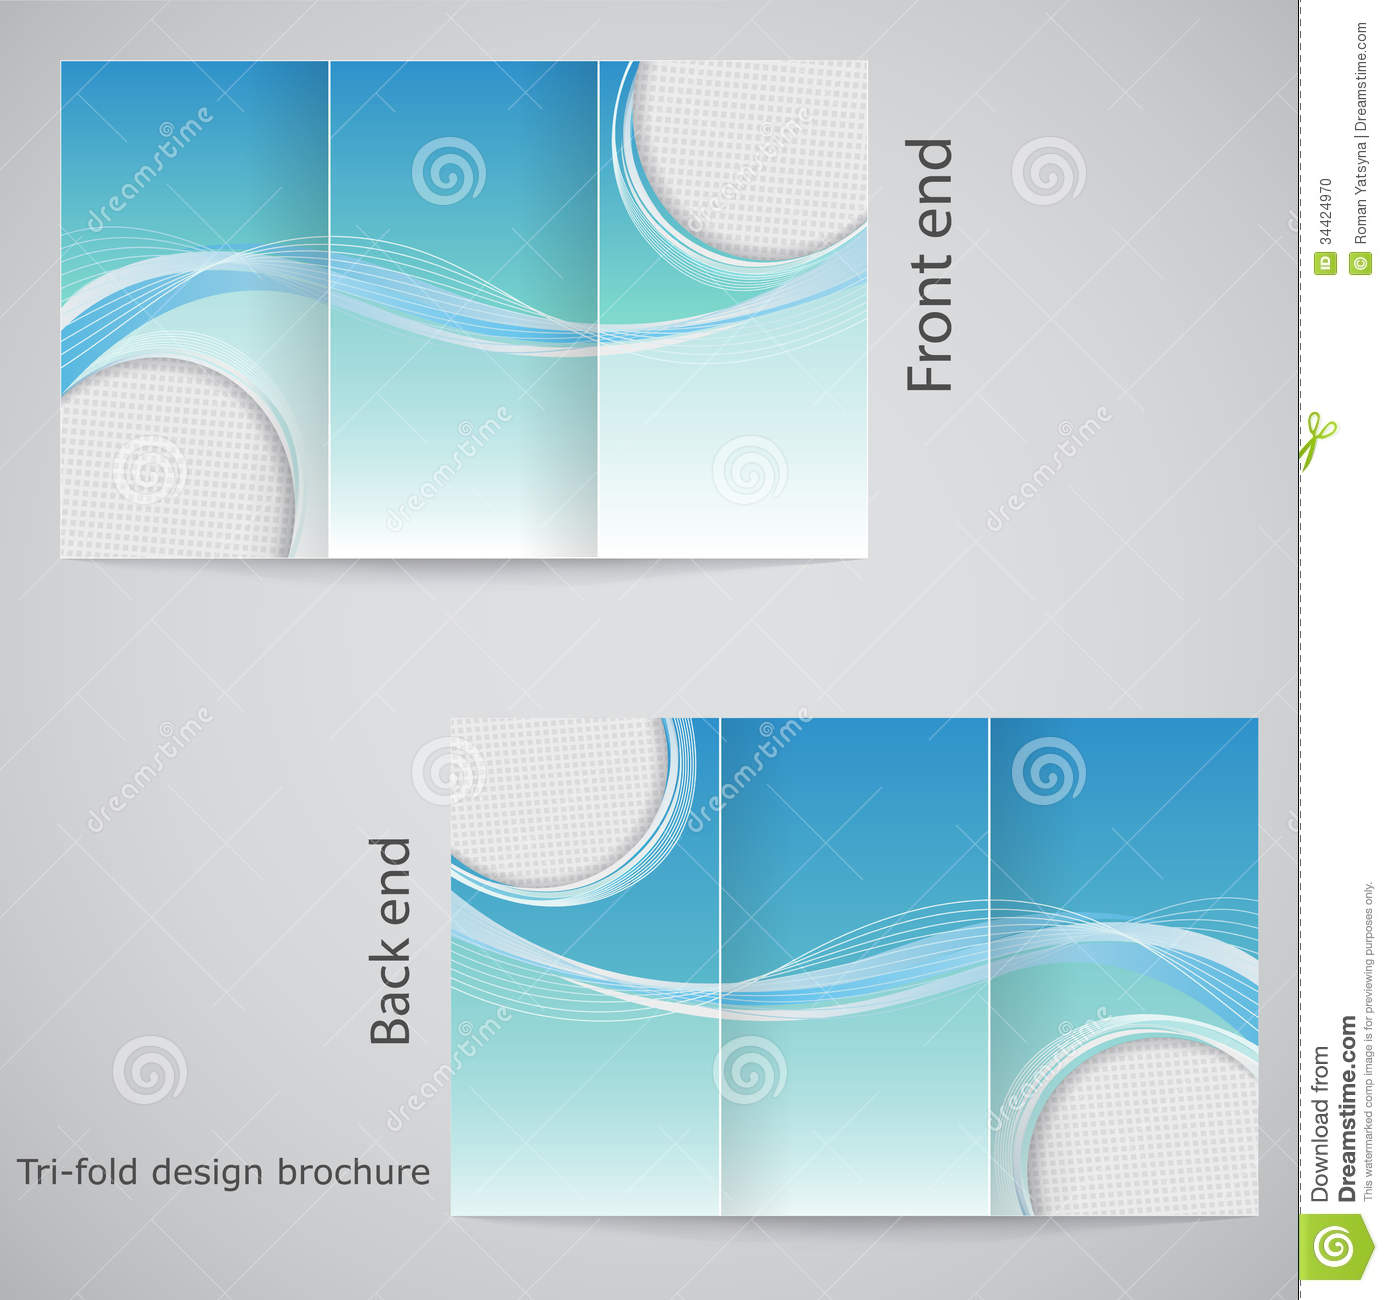 Trifold Brochure Design Stock Vector Illustration Of Layout - 3 folded brochure template